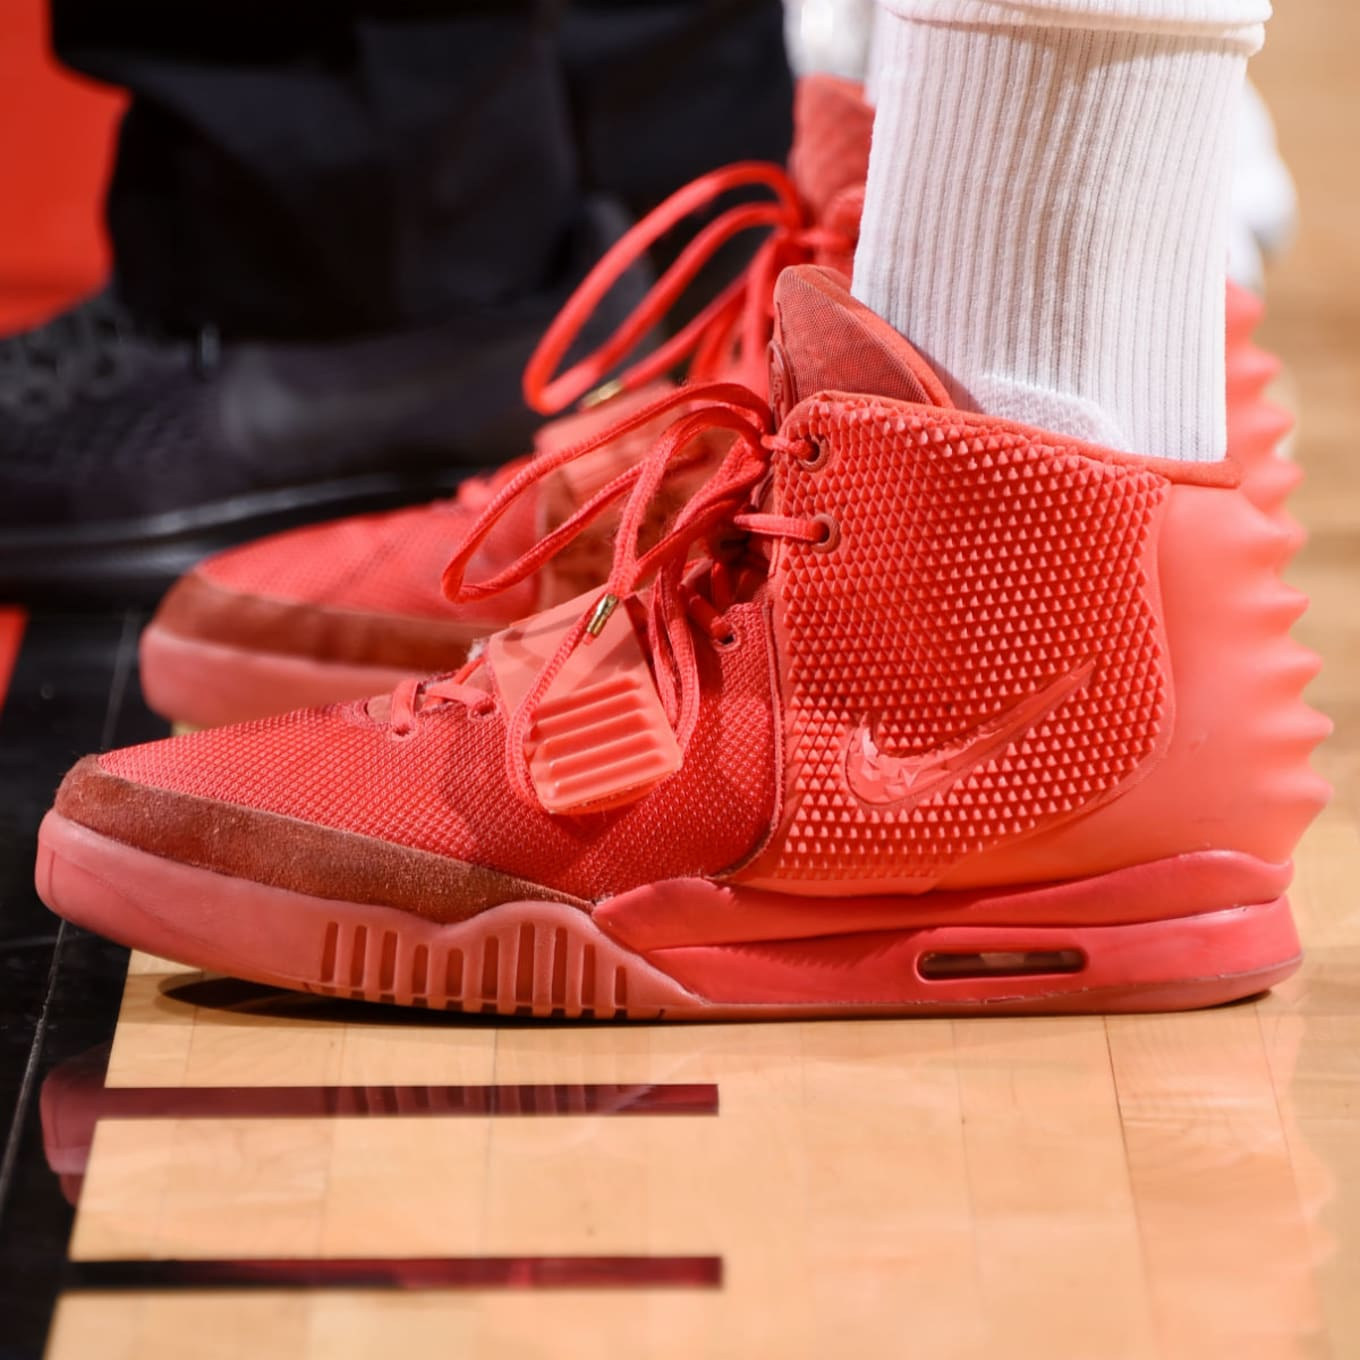 da4a90af3 P.J. Tucker Nike Air Yeezy 2 Red October